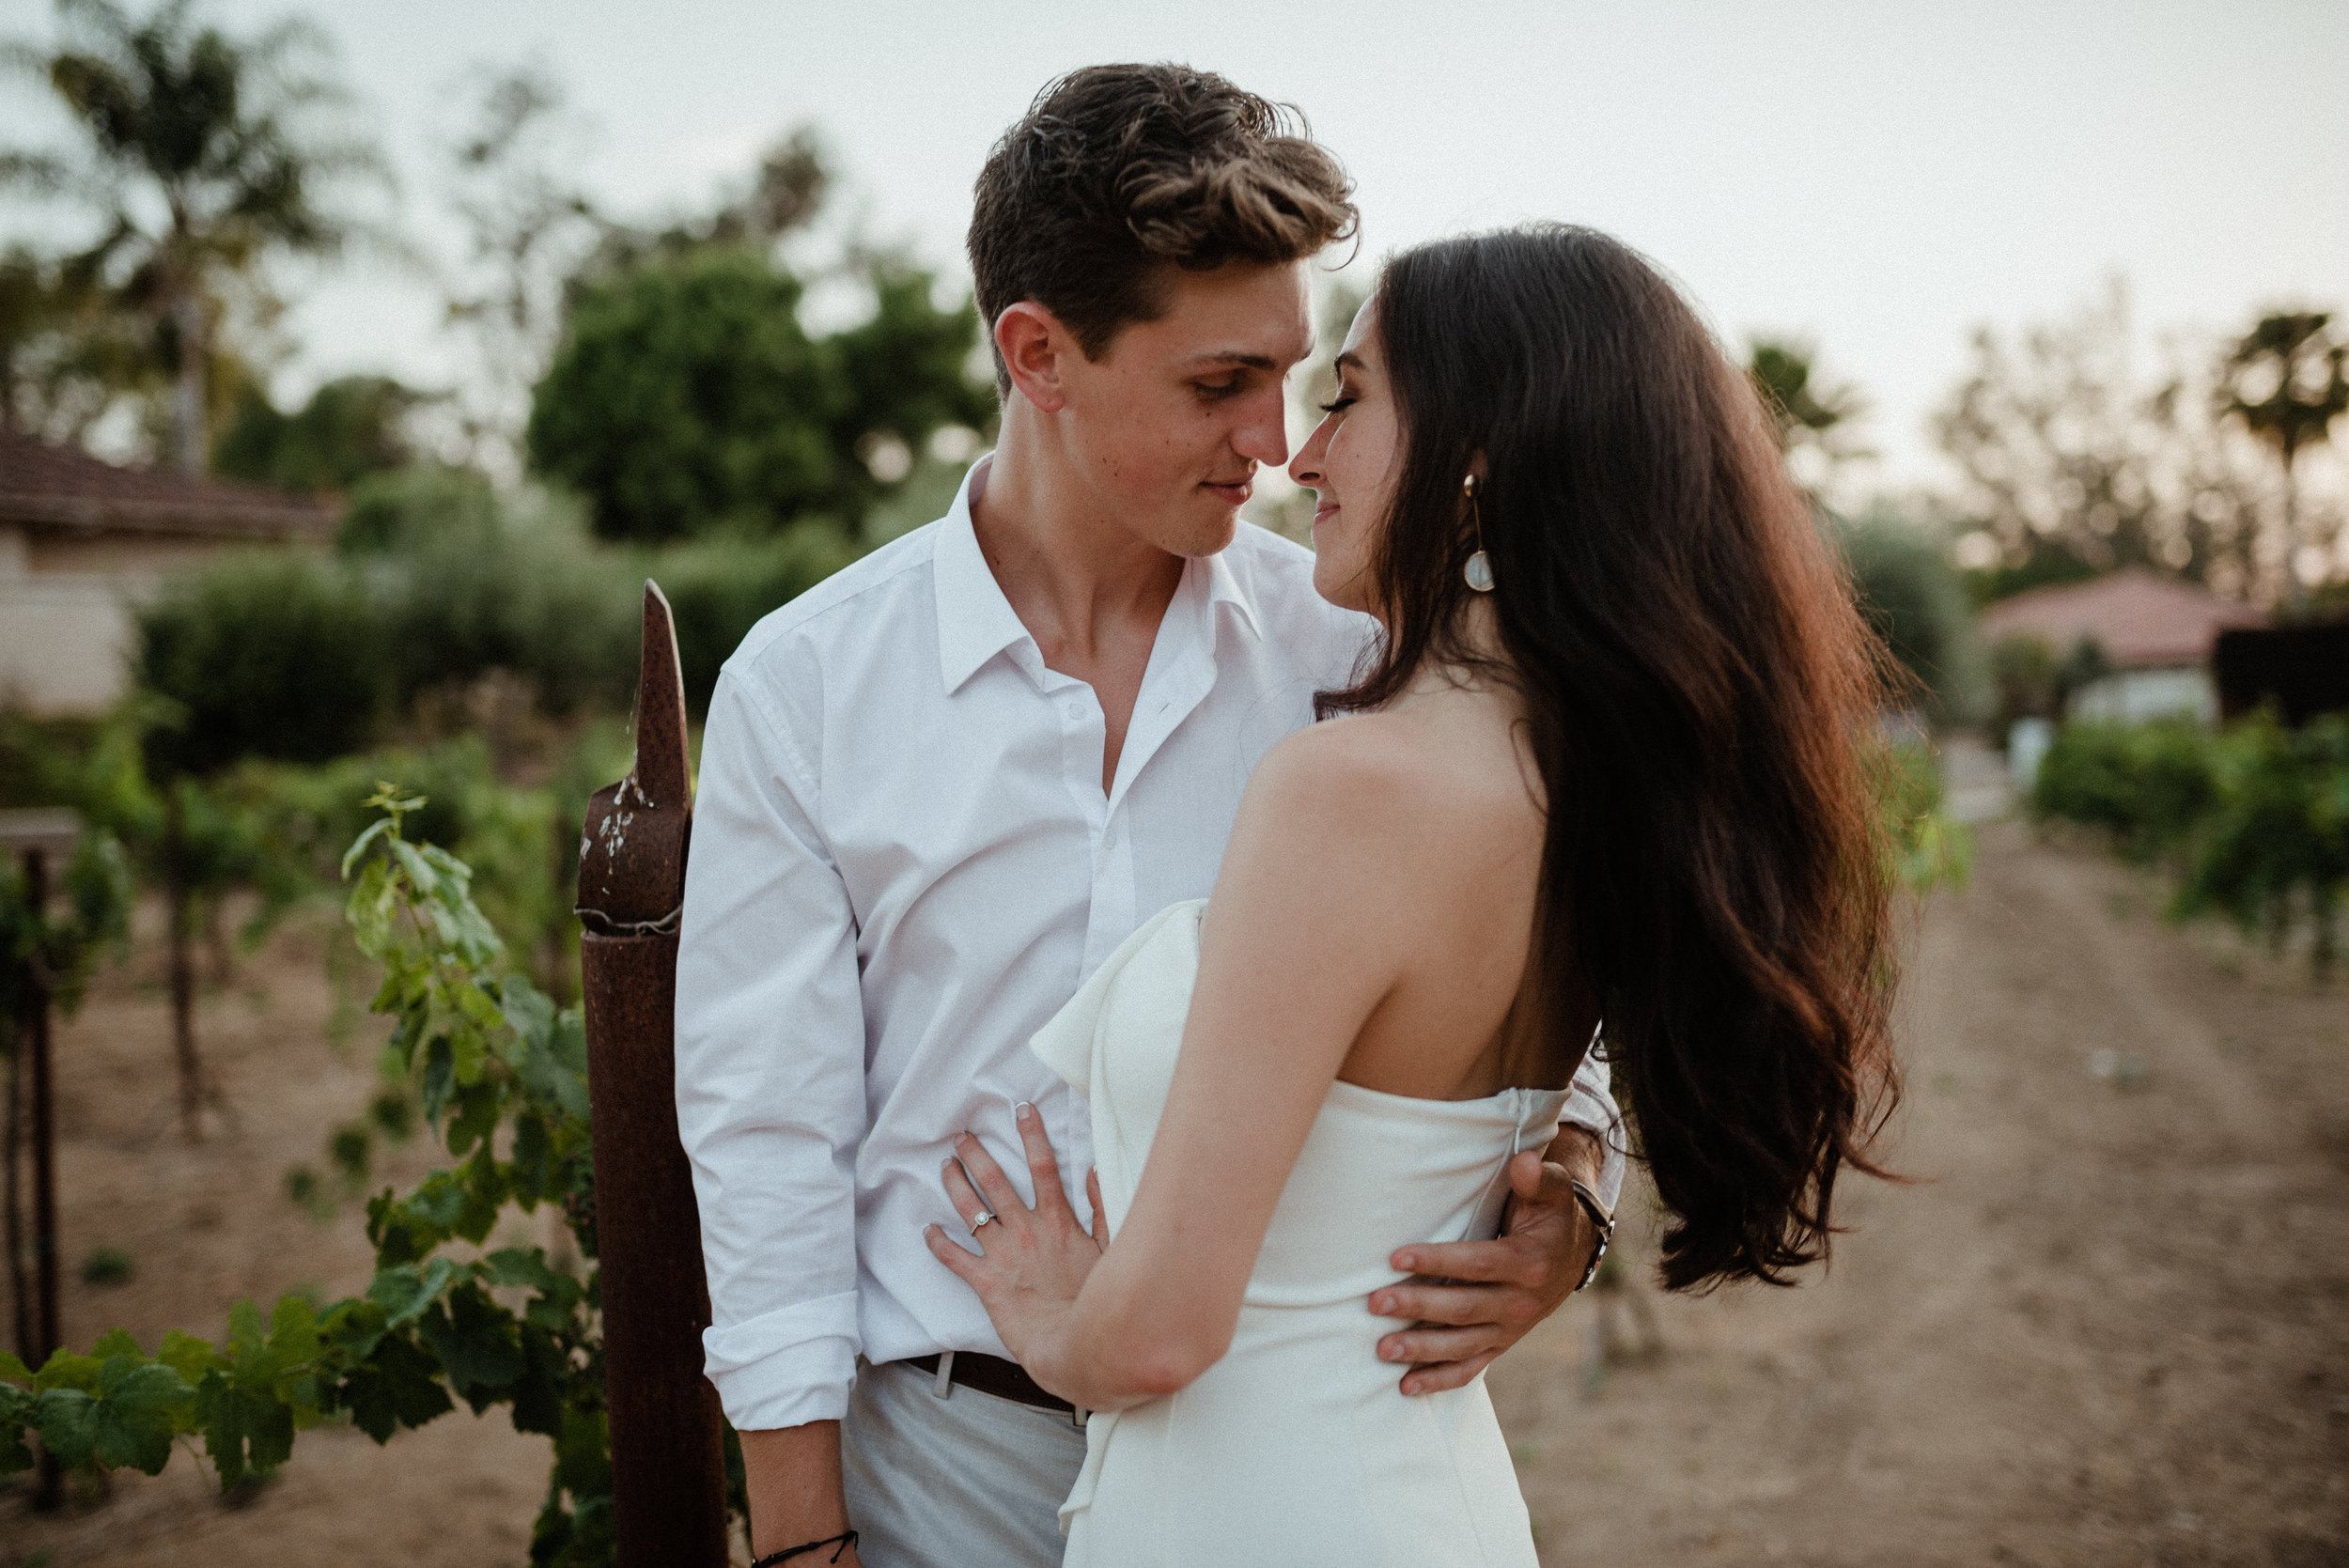 SanDiego-California-Bernardo-Winery-WashingtonDC-wedding-photographer-earthy-desert-wedding-LizRachelPhoto_0029